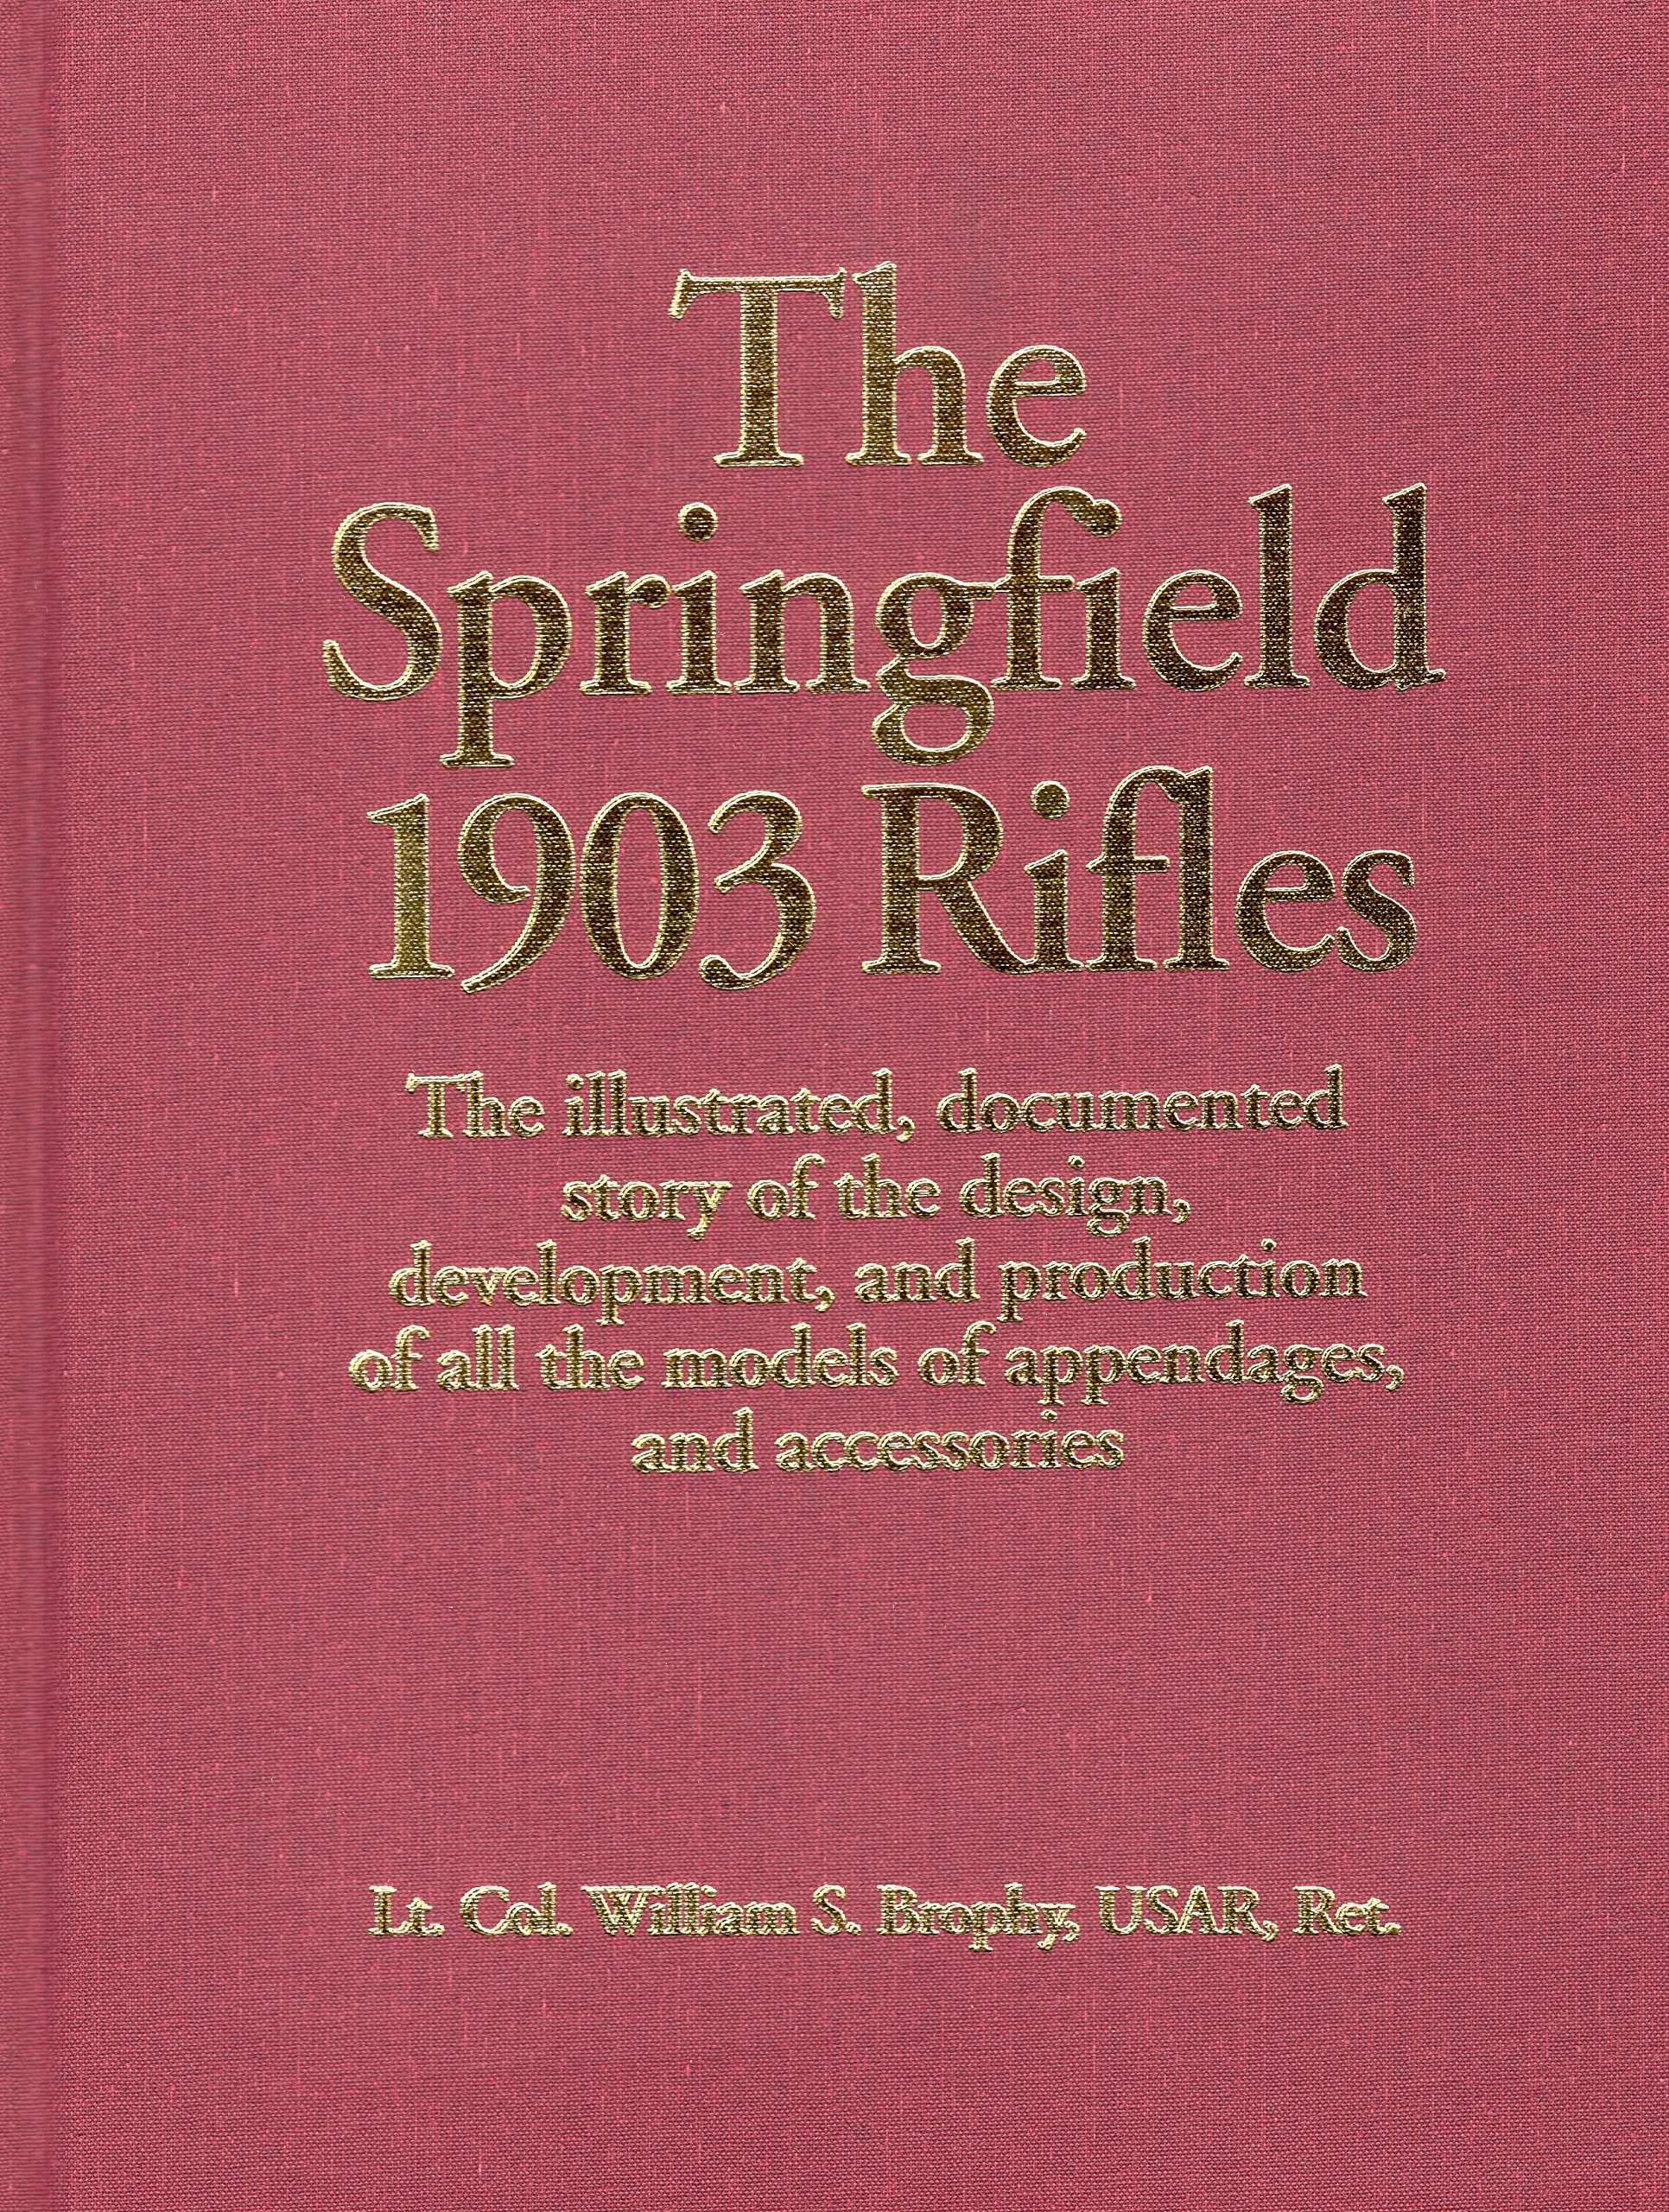 The Springfield 1903 Rifles (The Illustrated, Documented Story of the Design, Development, and Production of all the Models of Appendages, and Accessories)